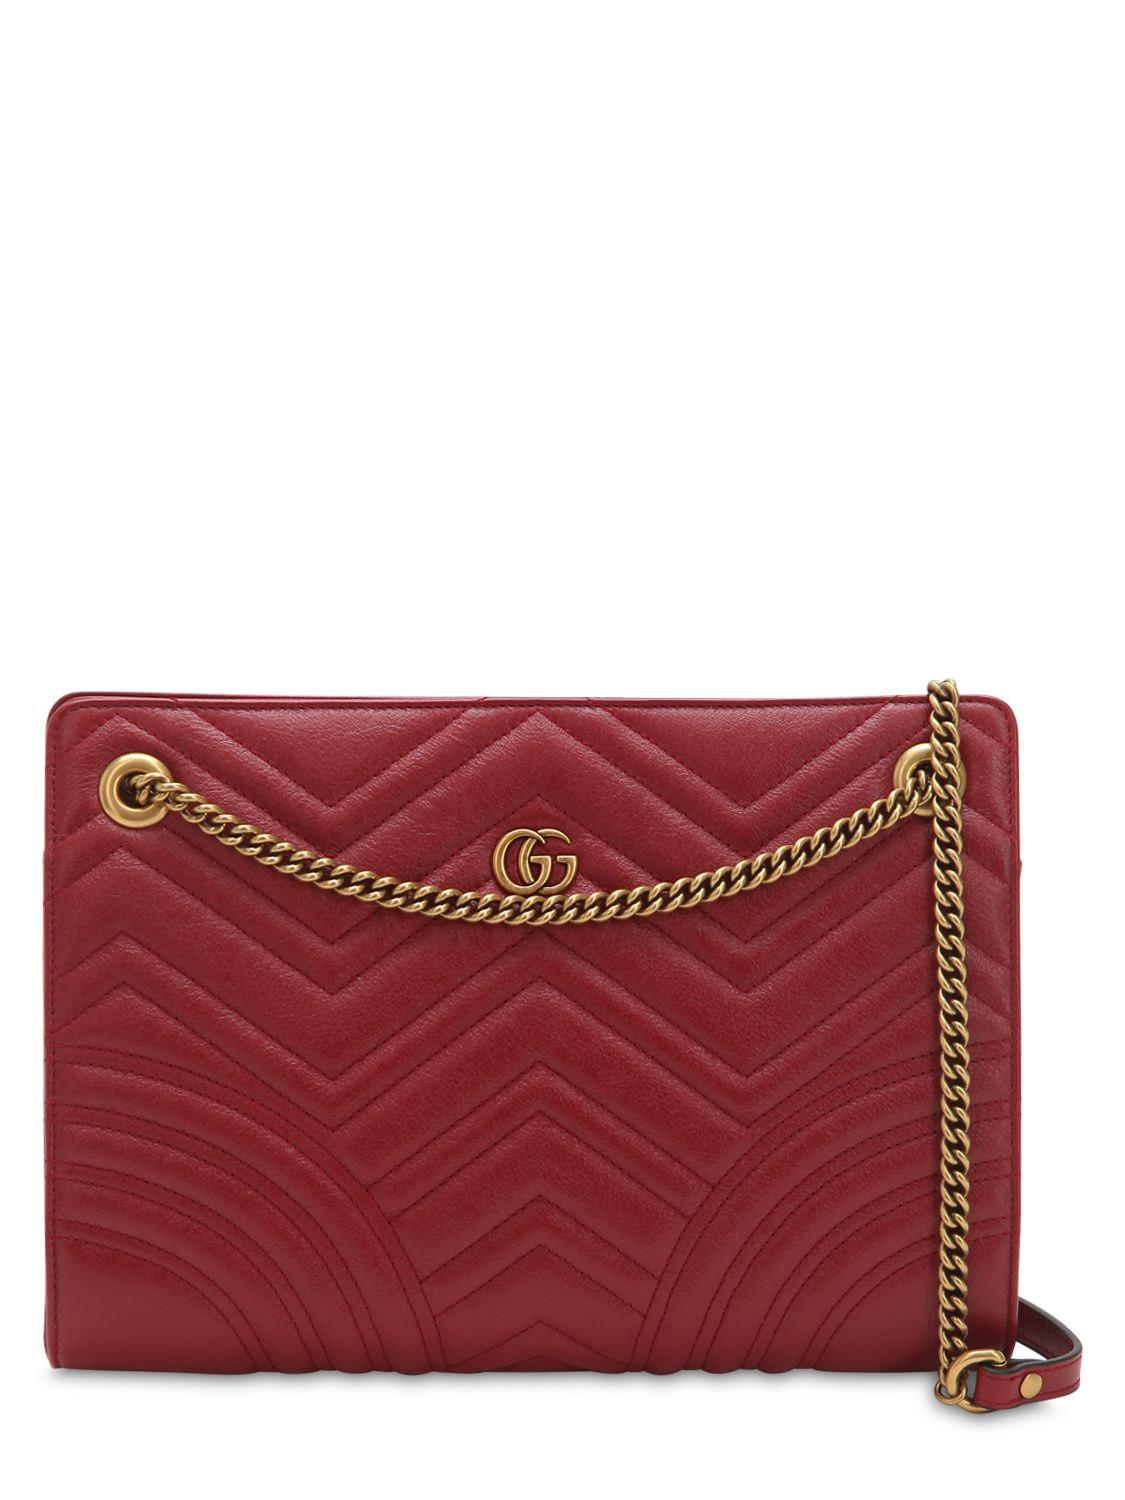 fab0f9457 Lyst - Gucci Gg Marmont Leather Shoulder Bag in Red